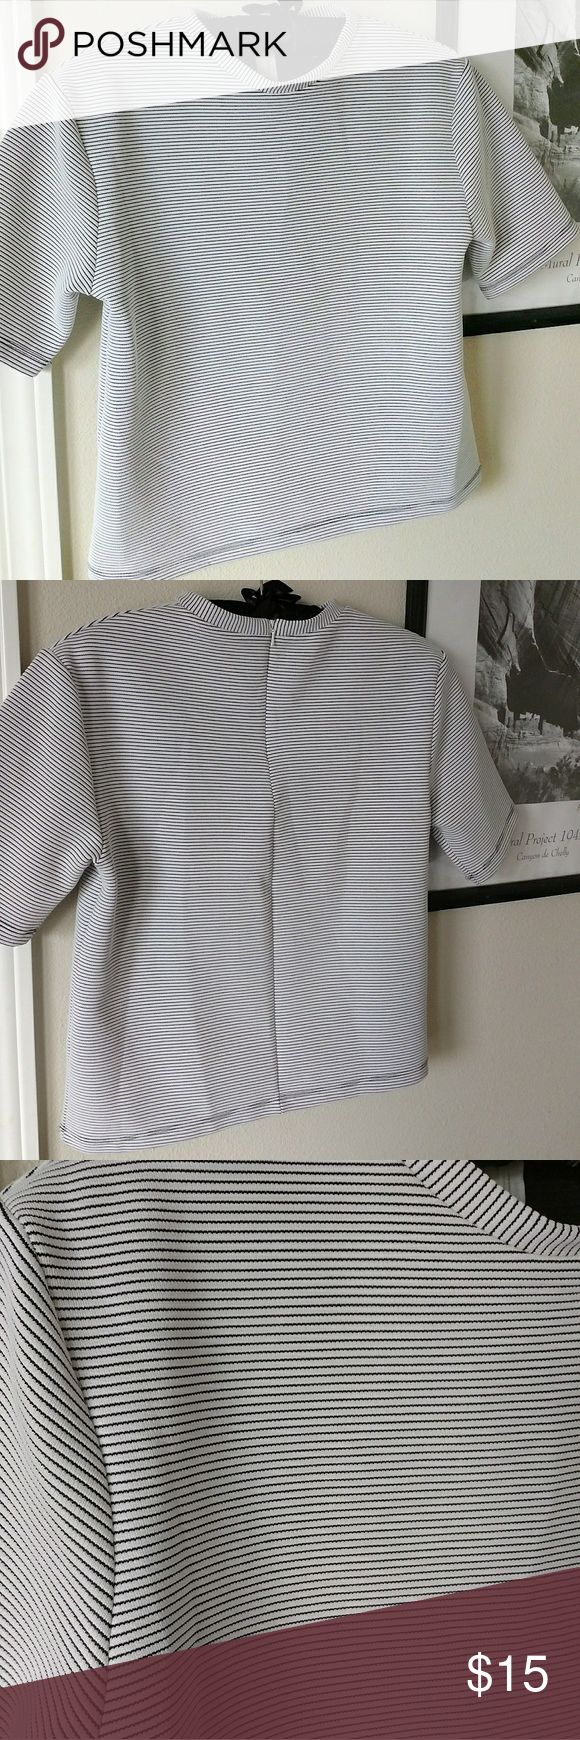 🌼Topshop Crop Top Short Sleeve w/ Zipper Chic crop top by Topshop. Zipper located on upper backside. Approx length of shirt 20 inches. Topshop Tops Crop Tops